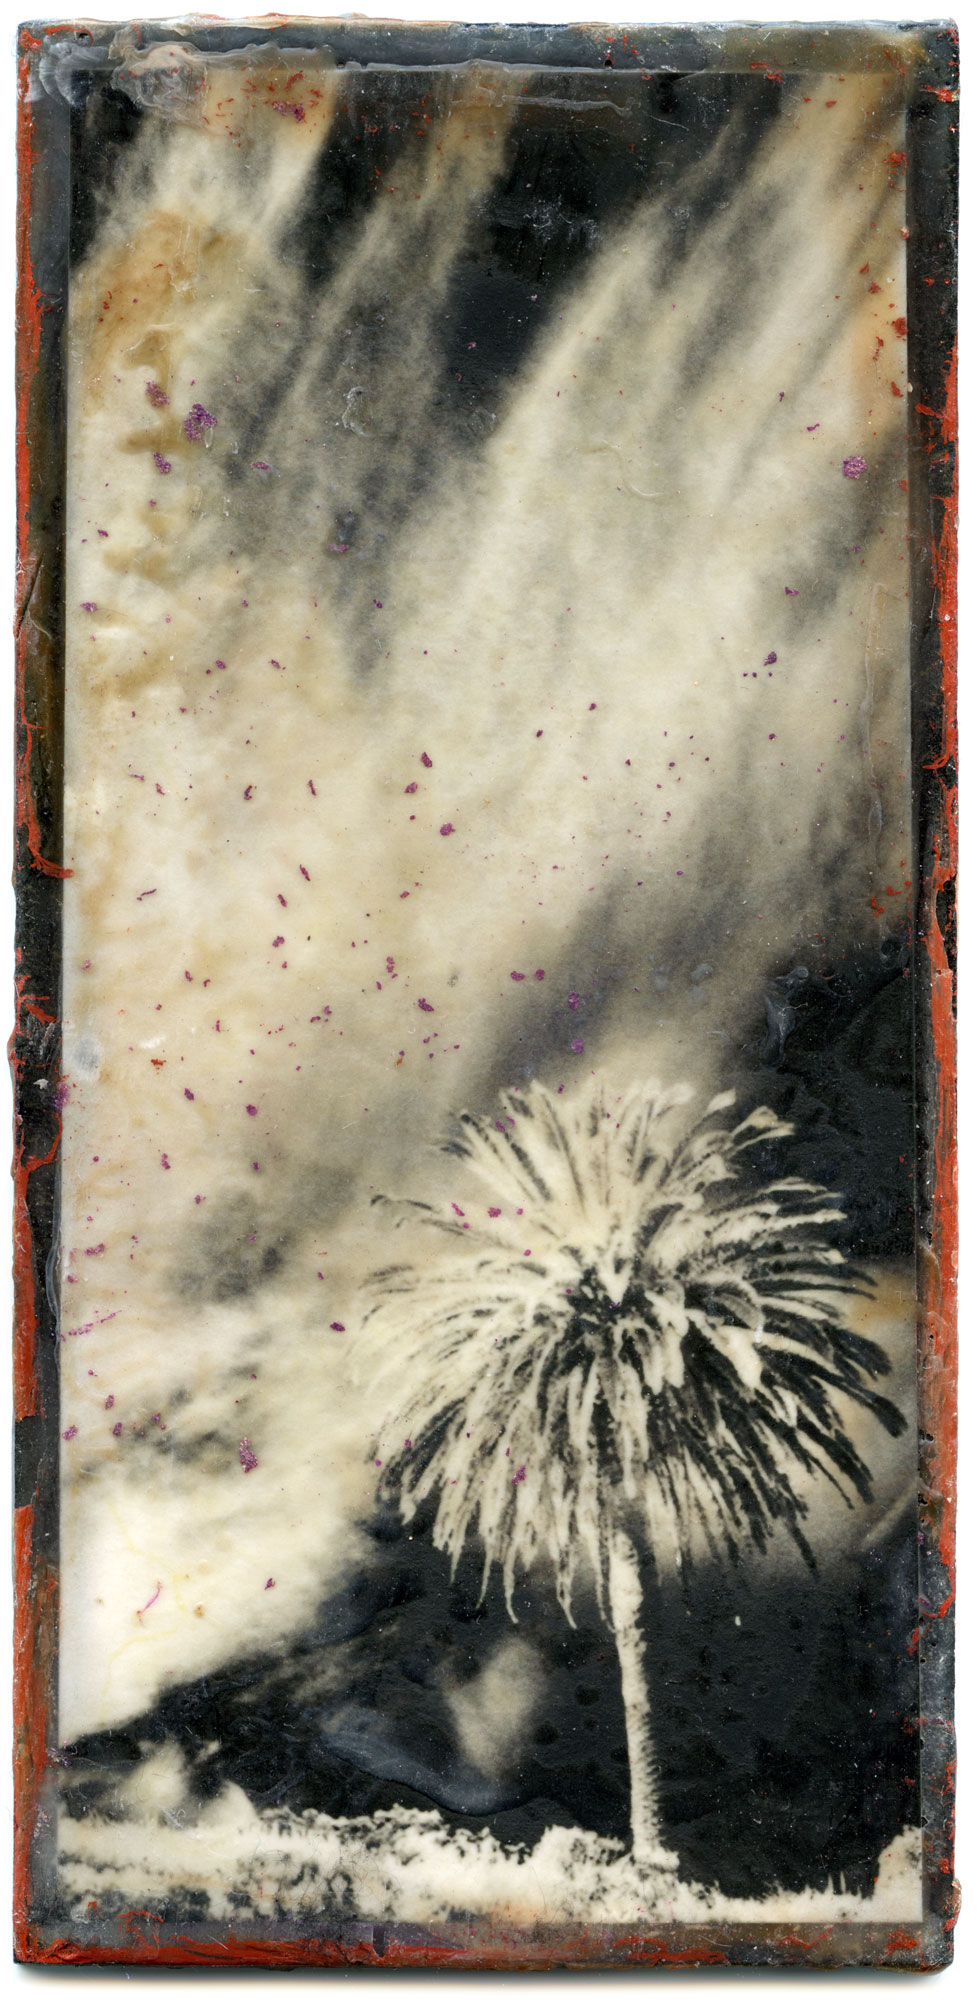 Legacy: Encaustic Waxing On Wooden Plate by Alex Kay